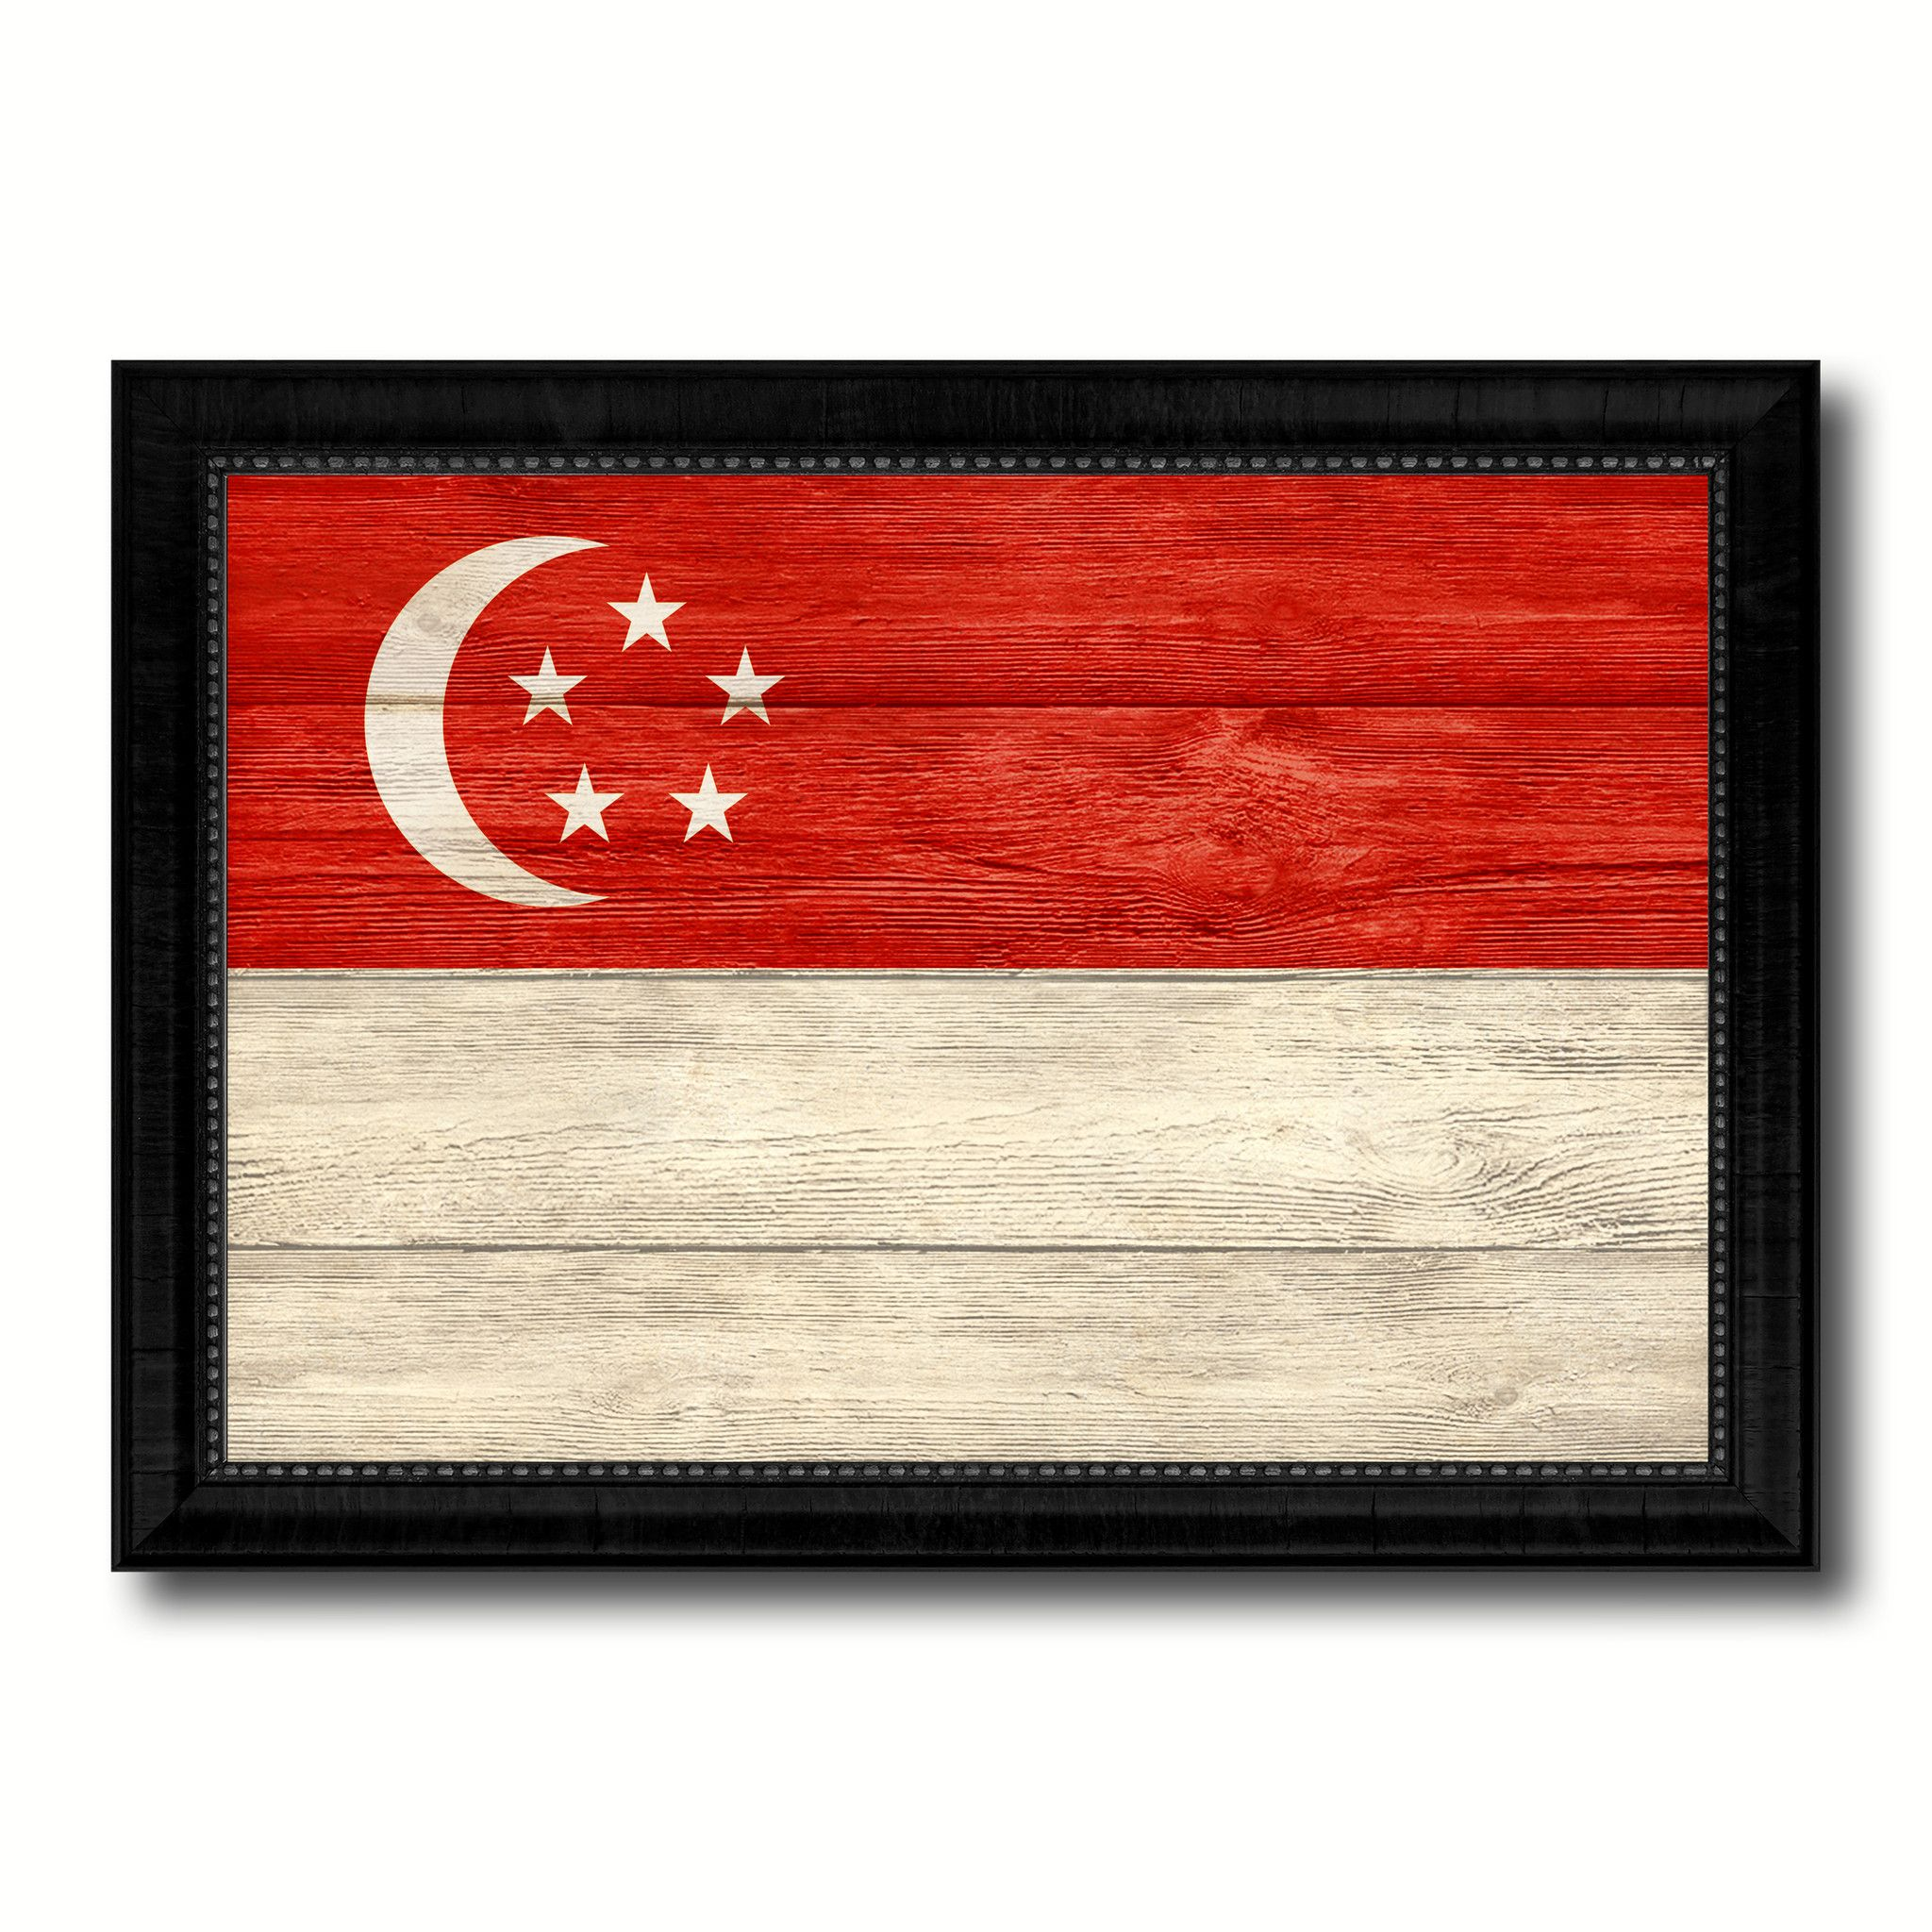 Home interiors and gifts framed art - Singapore Country Flag Texture Canvas Print With Black Picture Frame Home Decor Wall Art Decoration Collection Gift Ideas